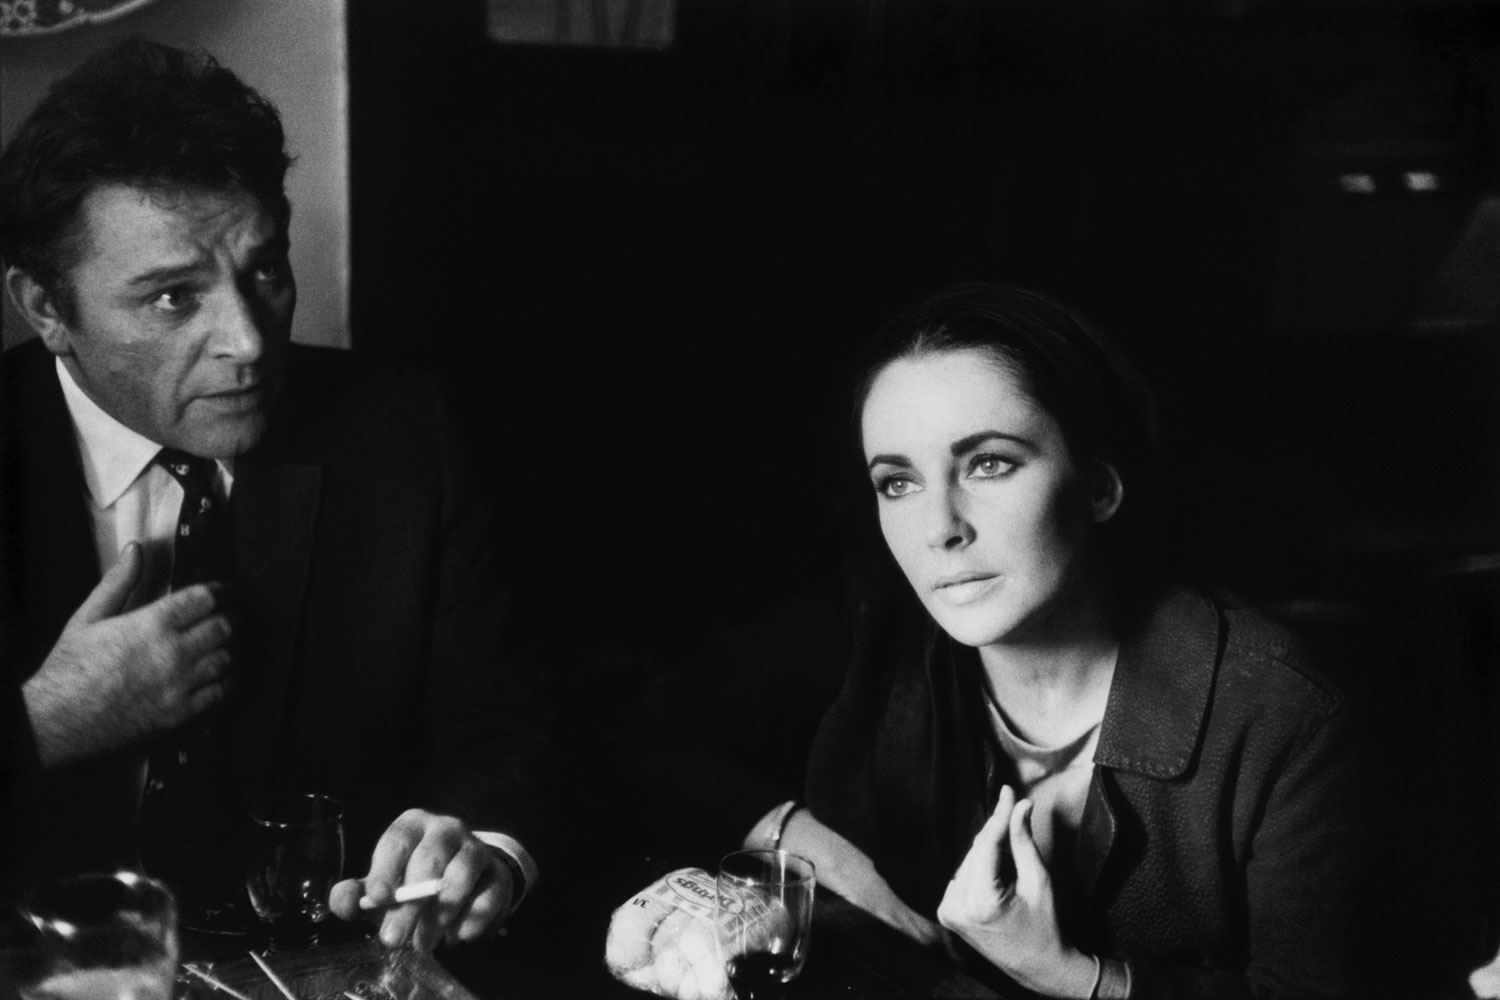 Richard Burton and Elizabeth Taylor at the local pub in Shepperton, England, where he is starring in the role of Becket.